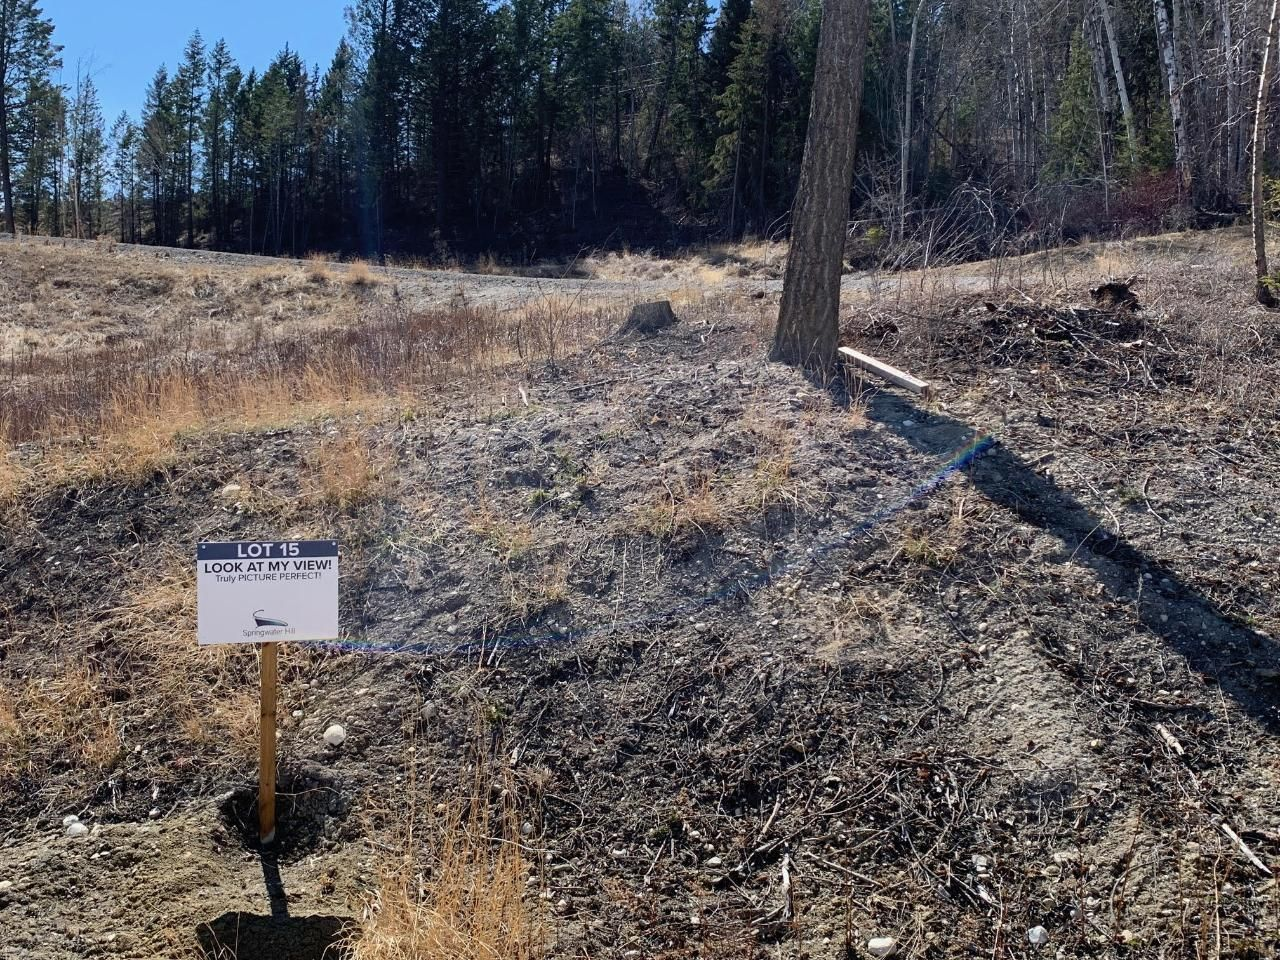 Main Photo: Lot 15 - 6200 COLUMBIA LAKE ROAD in Fairmont Hot Springs: Vacant Land for sale : MLS®# 2457892